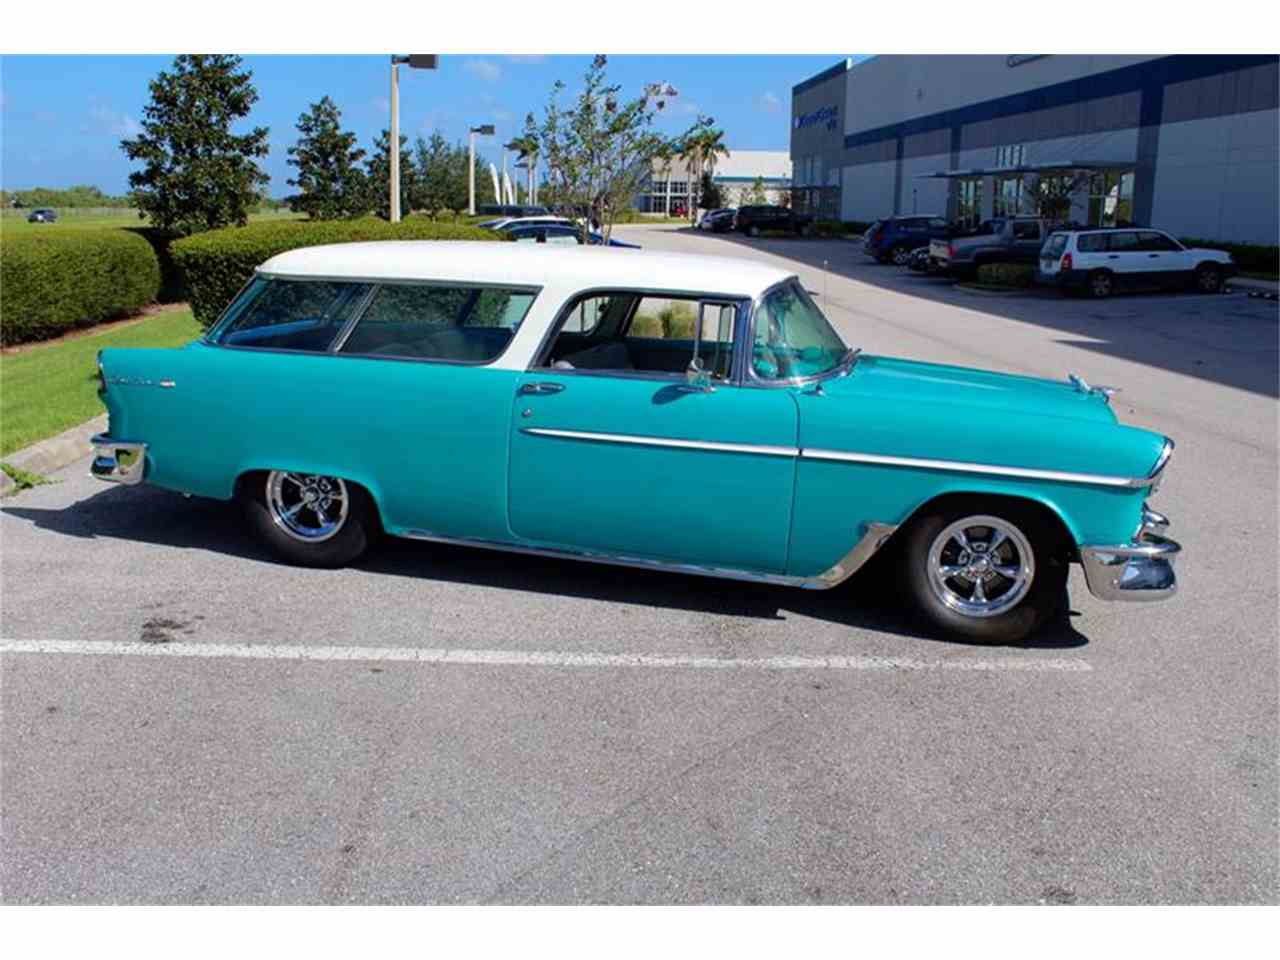 All Chevy 1955 chevrolet nomad : 1955 Chevrolet Nomad for Sale | ClassicCars.com | CC-1029243